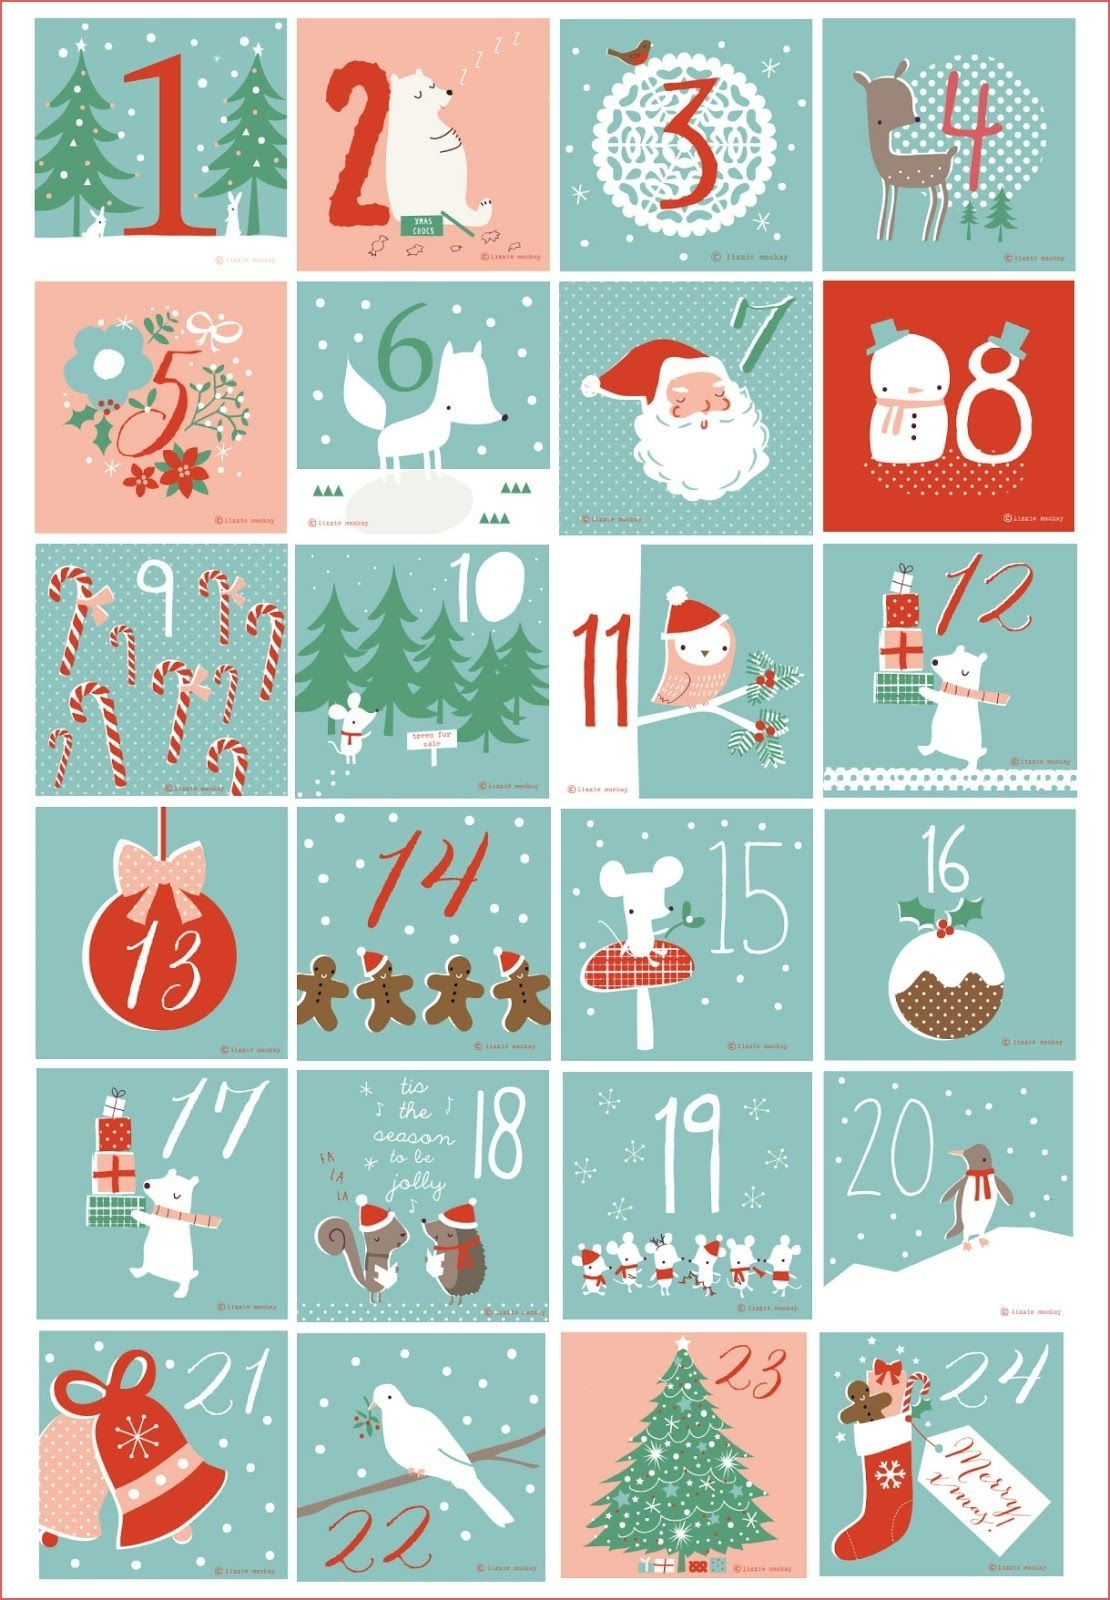 Blank Advent Calendar 2017 Printable Calendar Template 2018 for Advent Calendar Printable Numbers Calendar Template